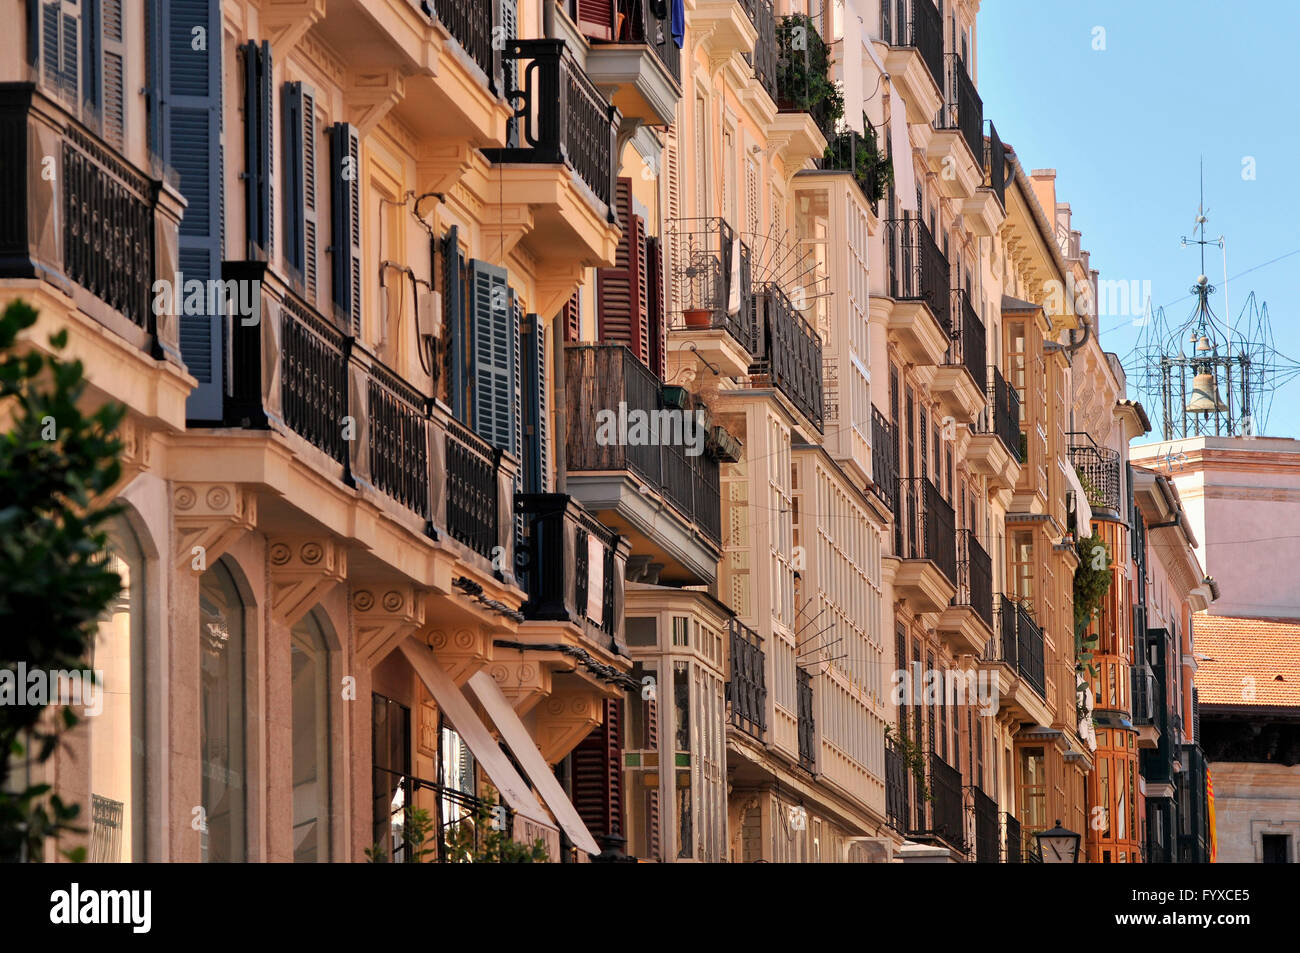 Old part of town, Palma de Mallorca, Mallorca, Spain - Stock Image